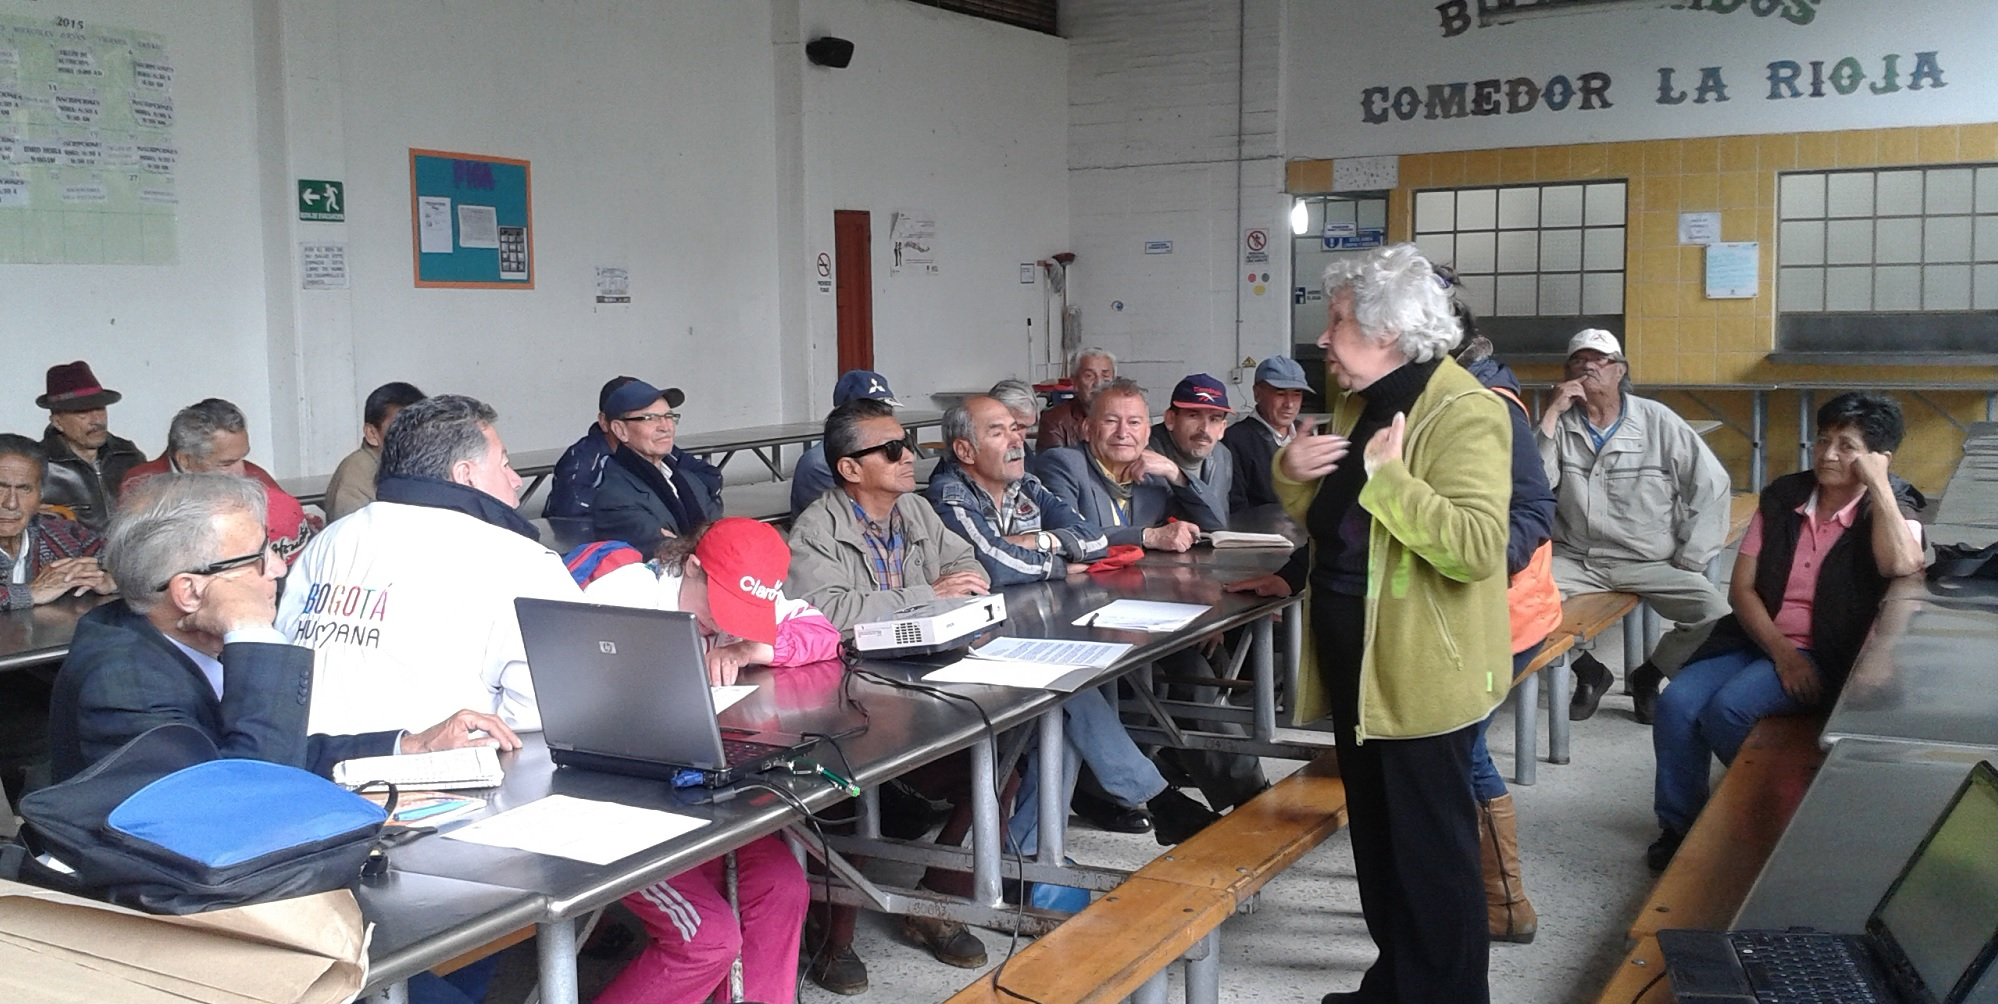 María conducts a workshop on the rights of older people in Bogotá, Colomba (c) Angela Sanabria/HelpAge International